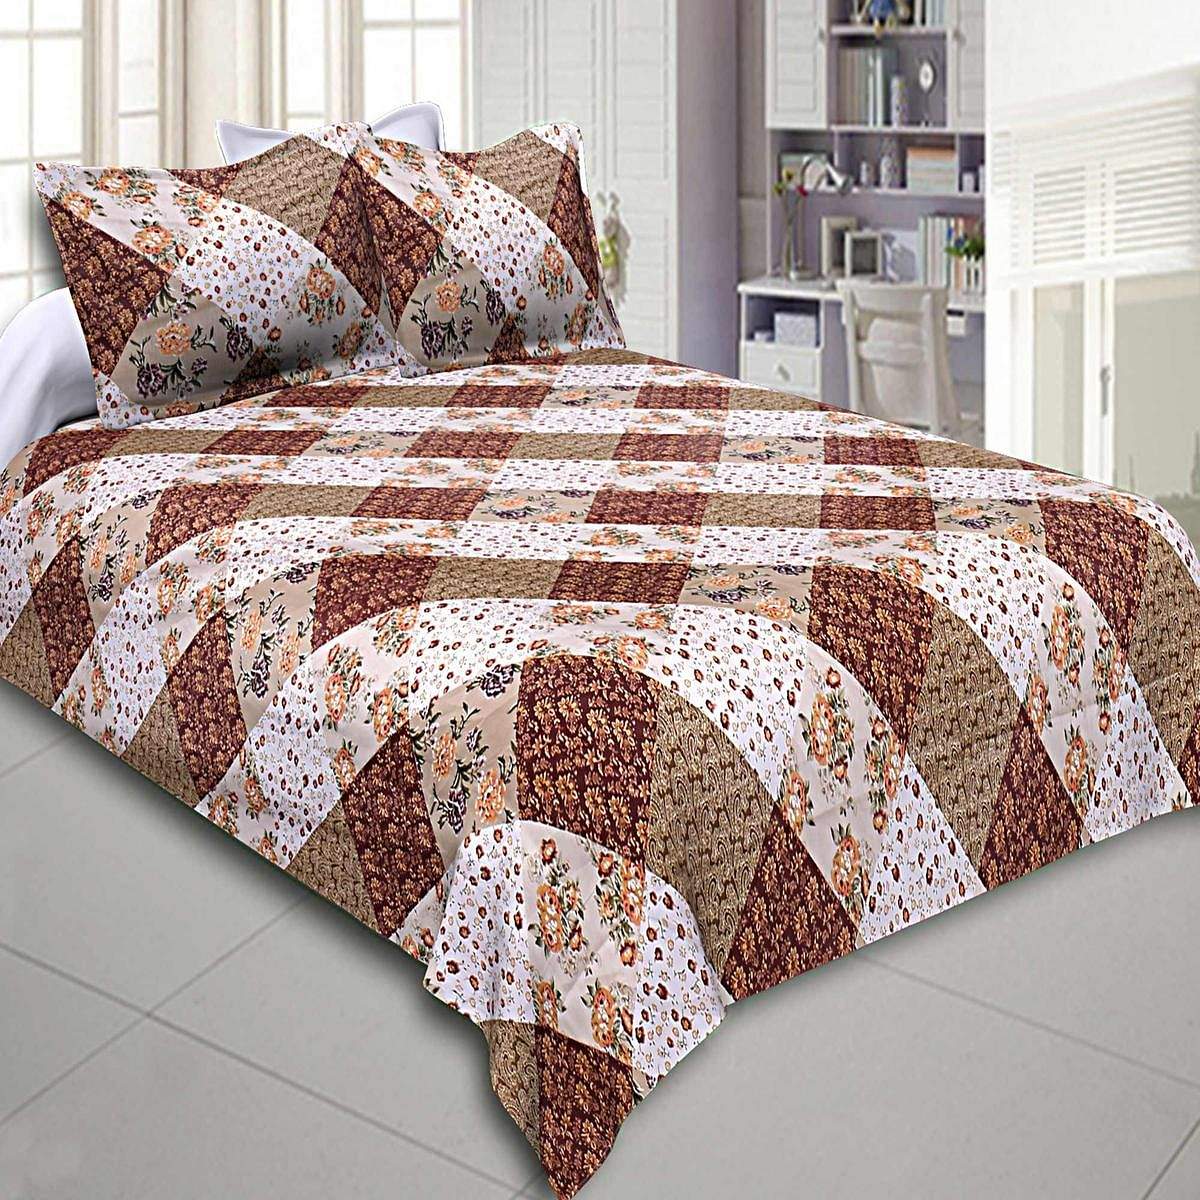 Majesty Multi-Brown Colored Floral Printed Cotton Double Bedsheet With Pillow Cover